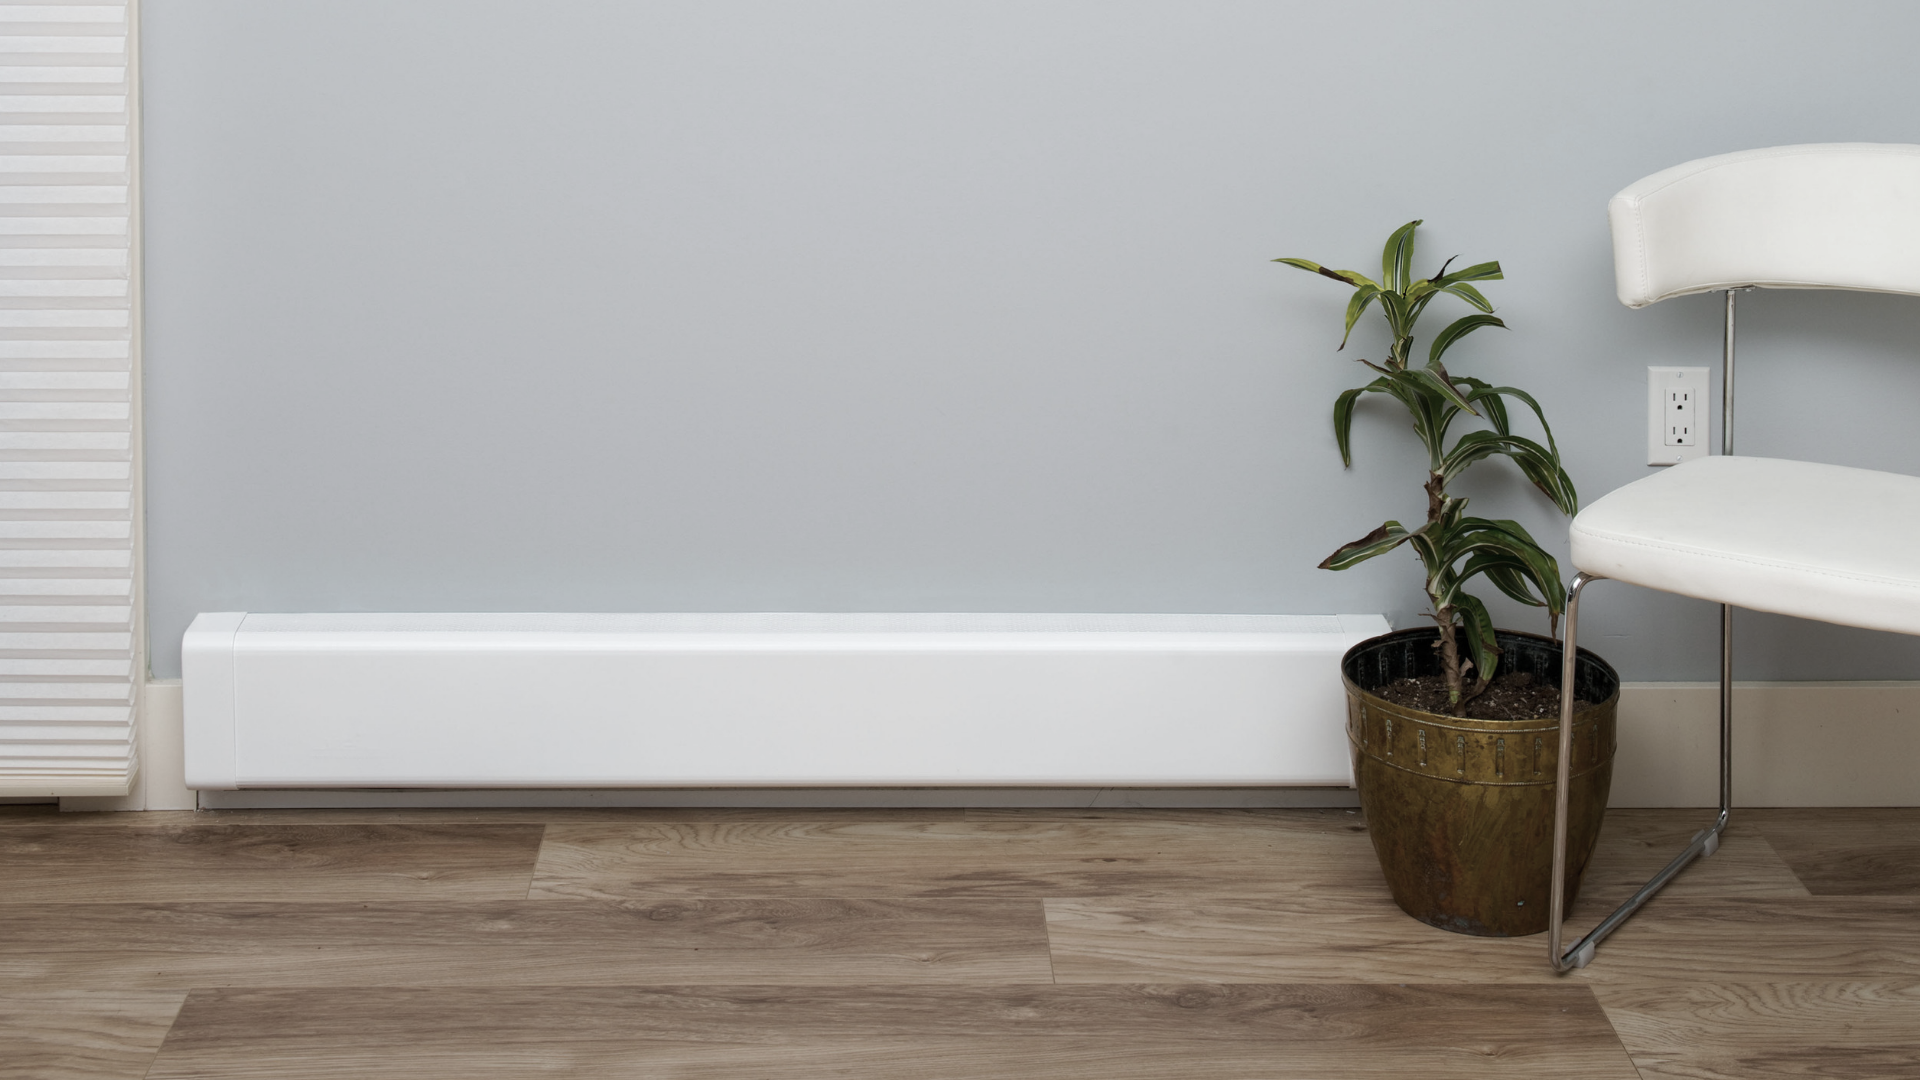 Vent and Cover: Decorative Vent Covers and Replacement Baseboard